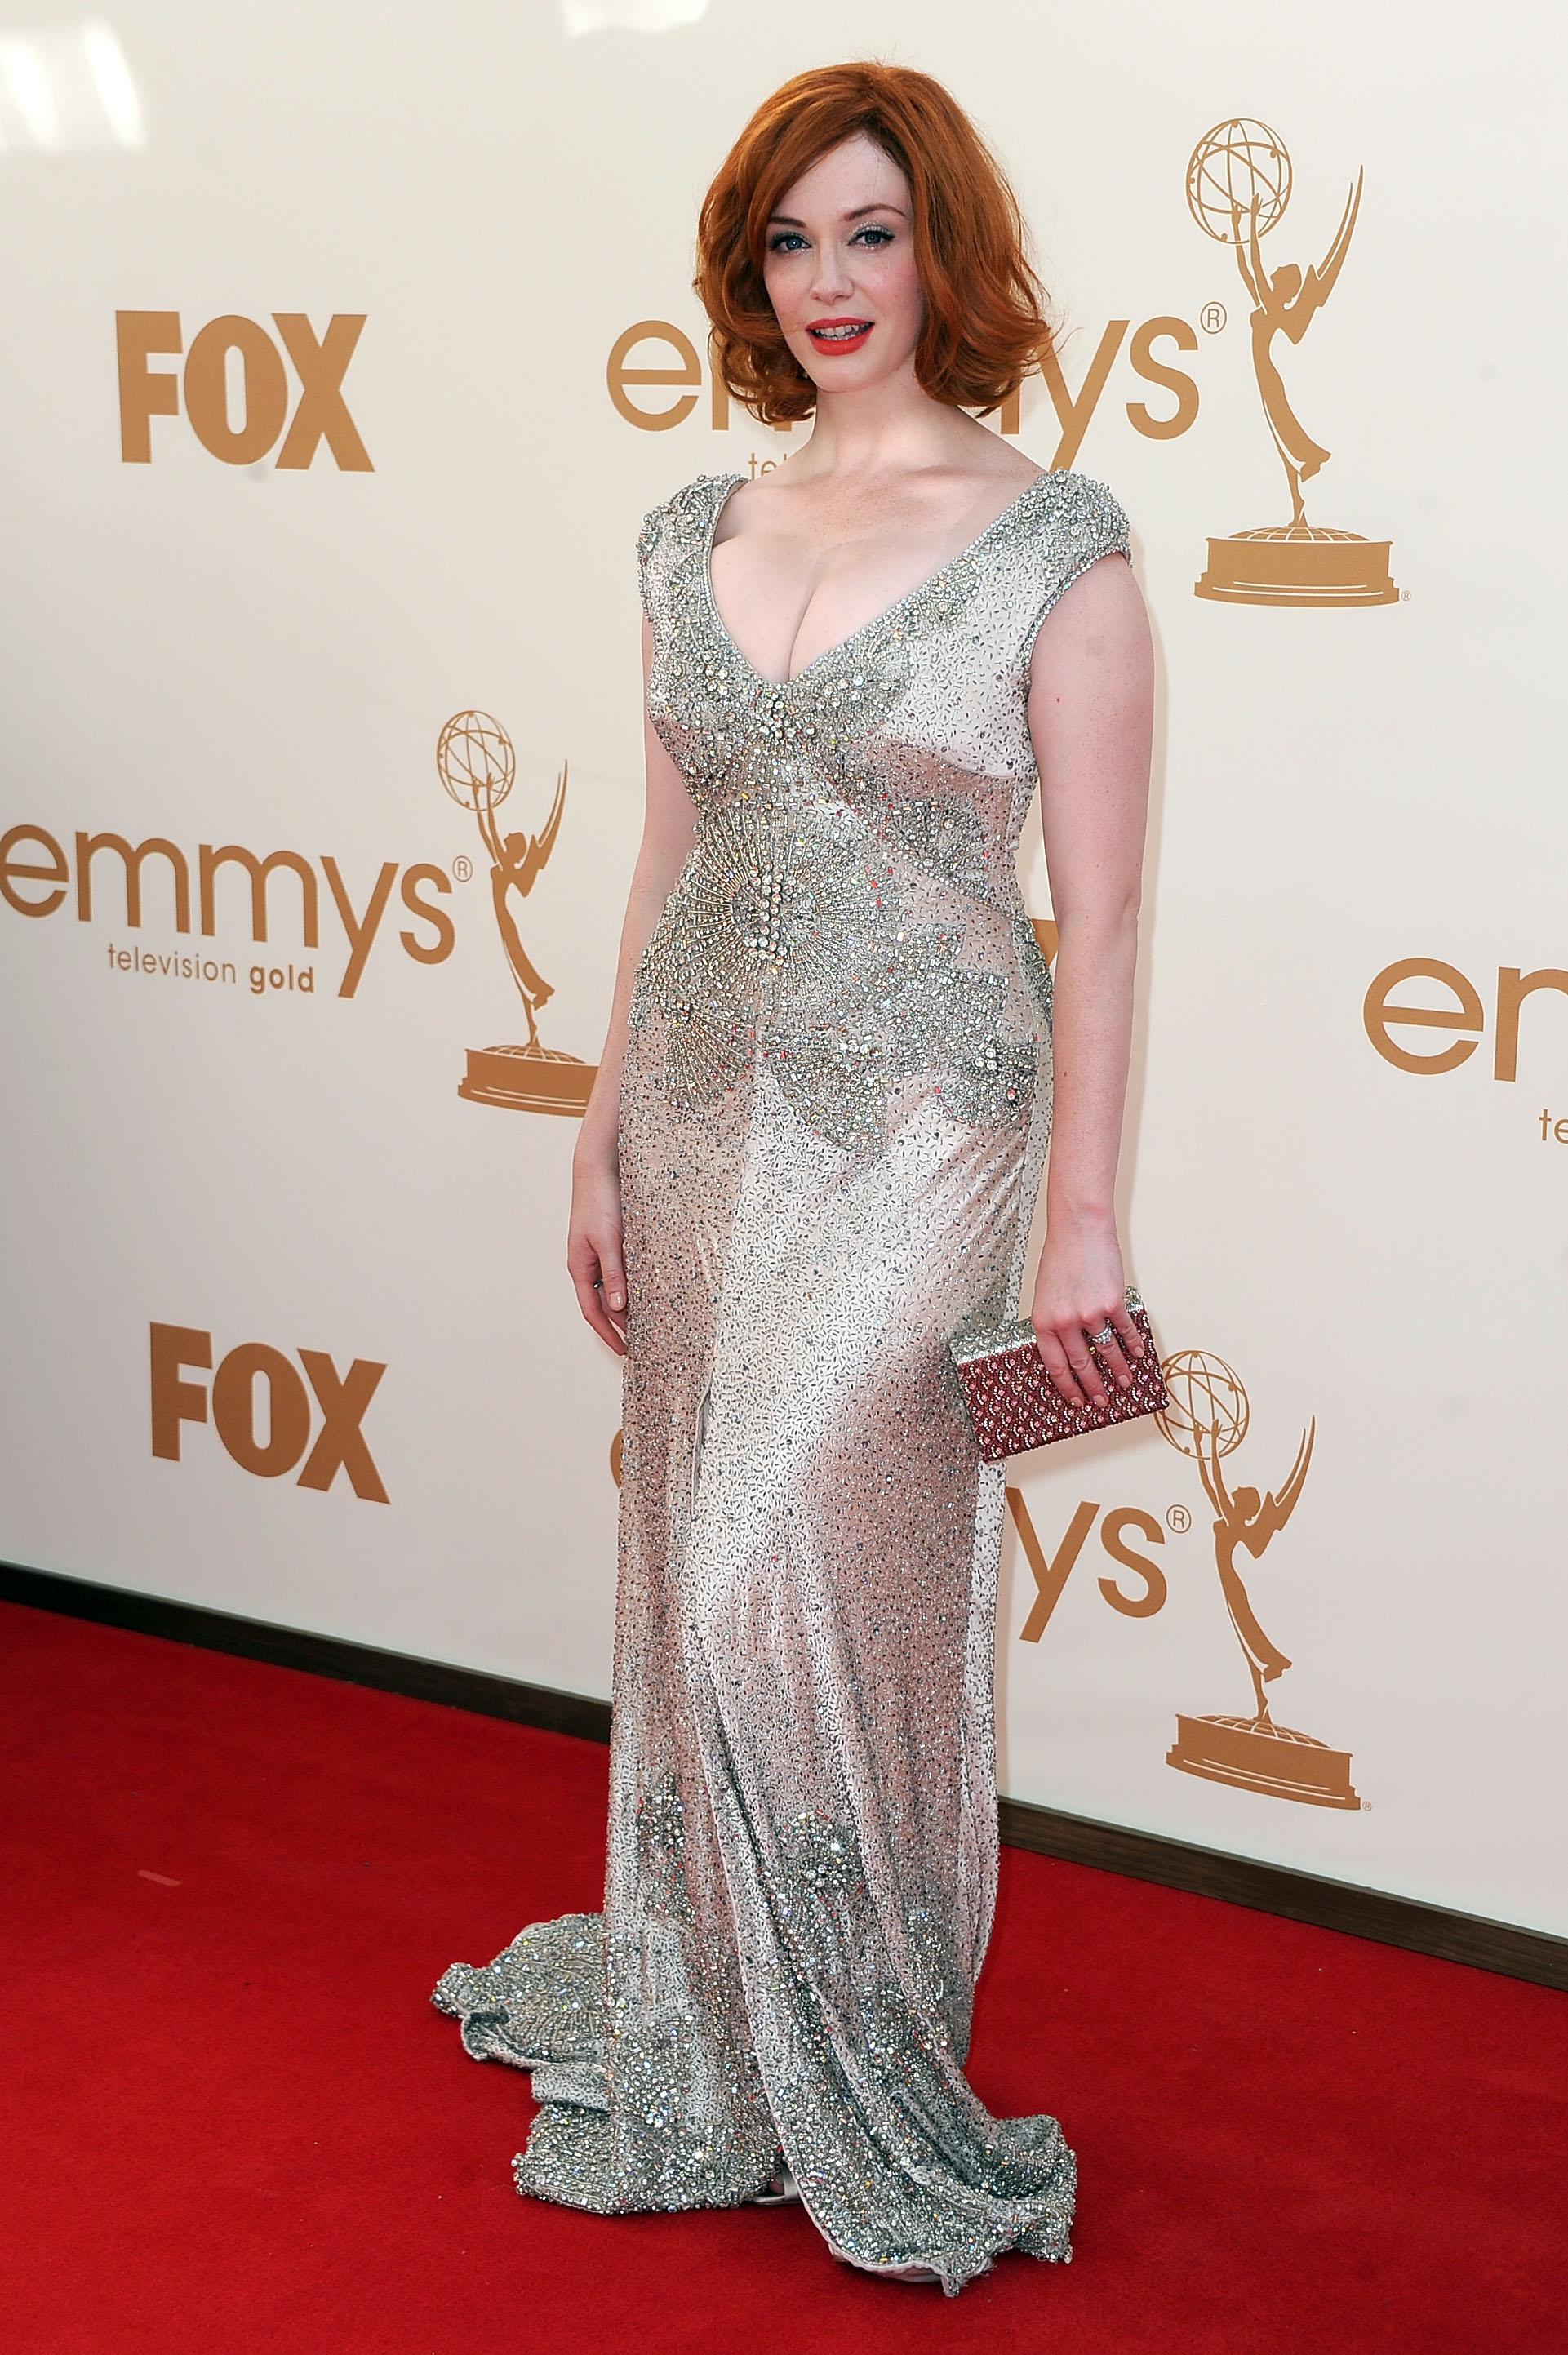 Christina Hendricks at the 2011 Emmys.